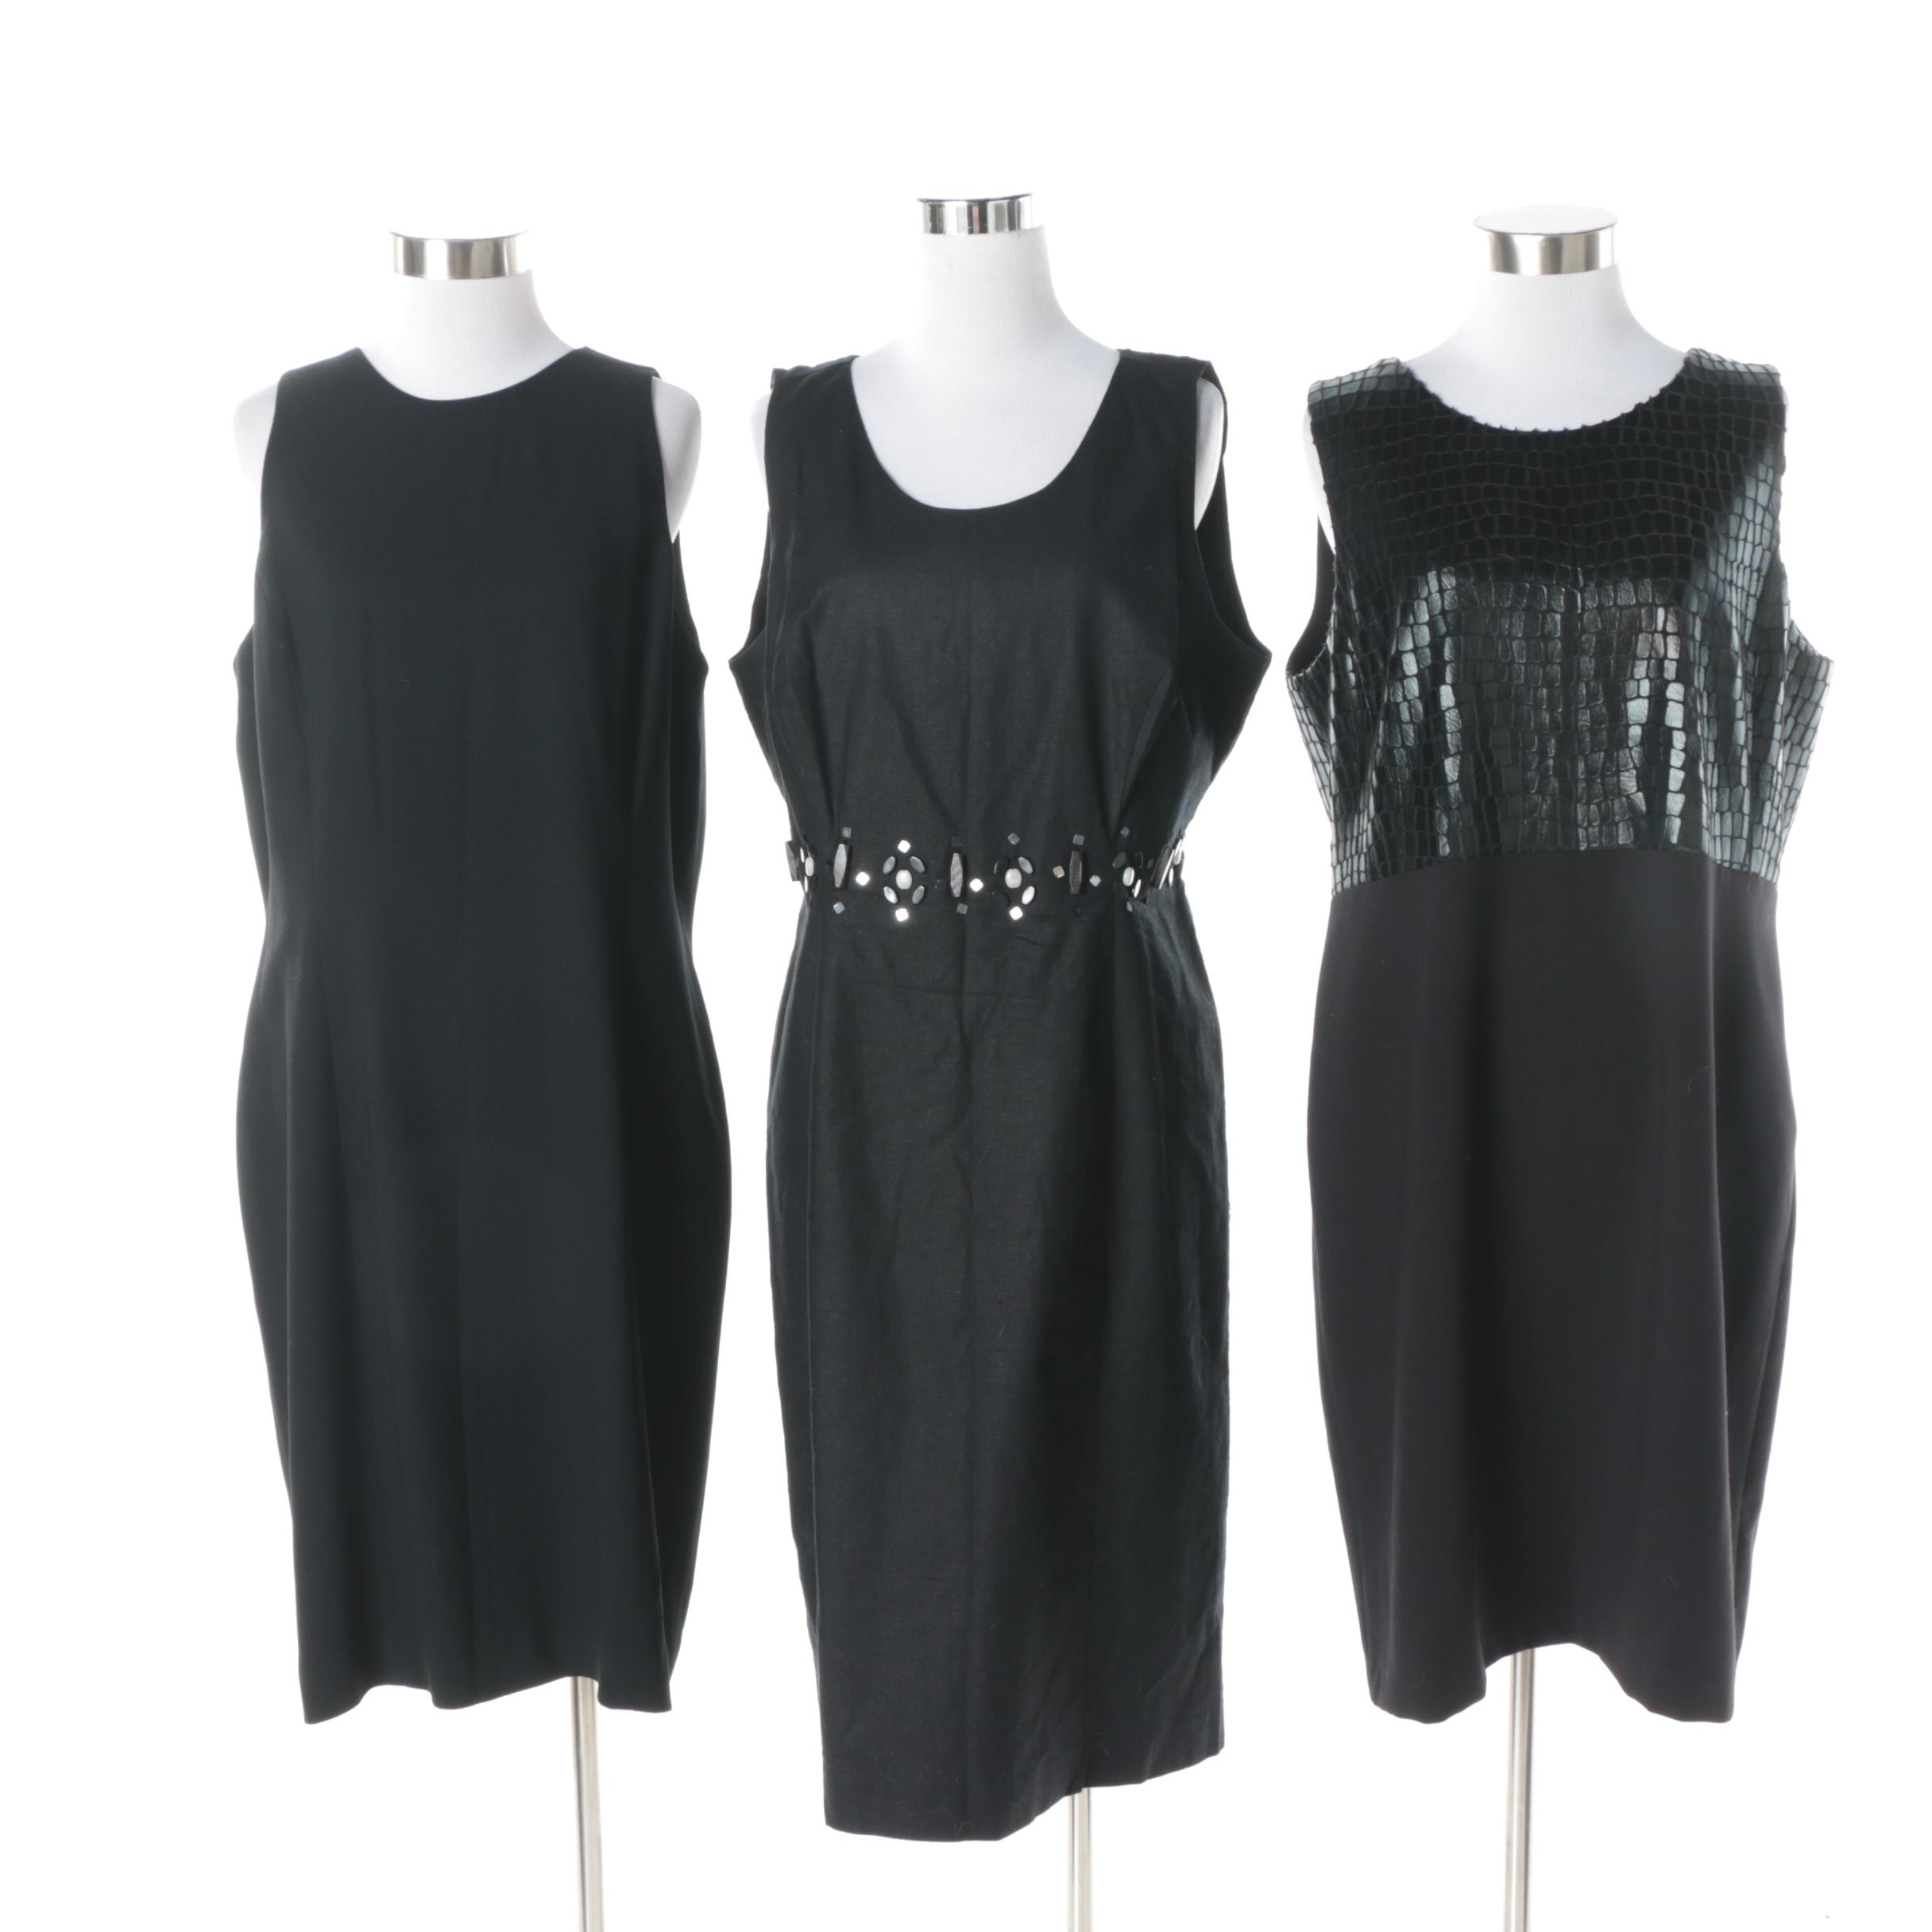 Women's O Oscar by Oscar de la Renta, Anne Klein and Jones New York Dresses